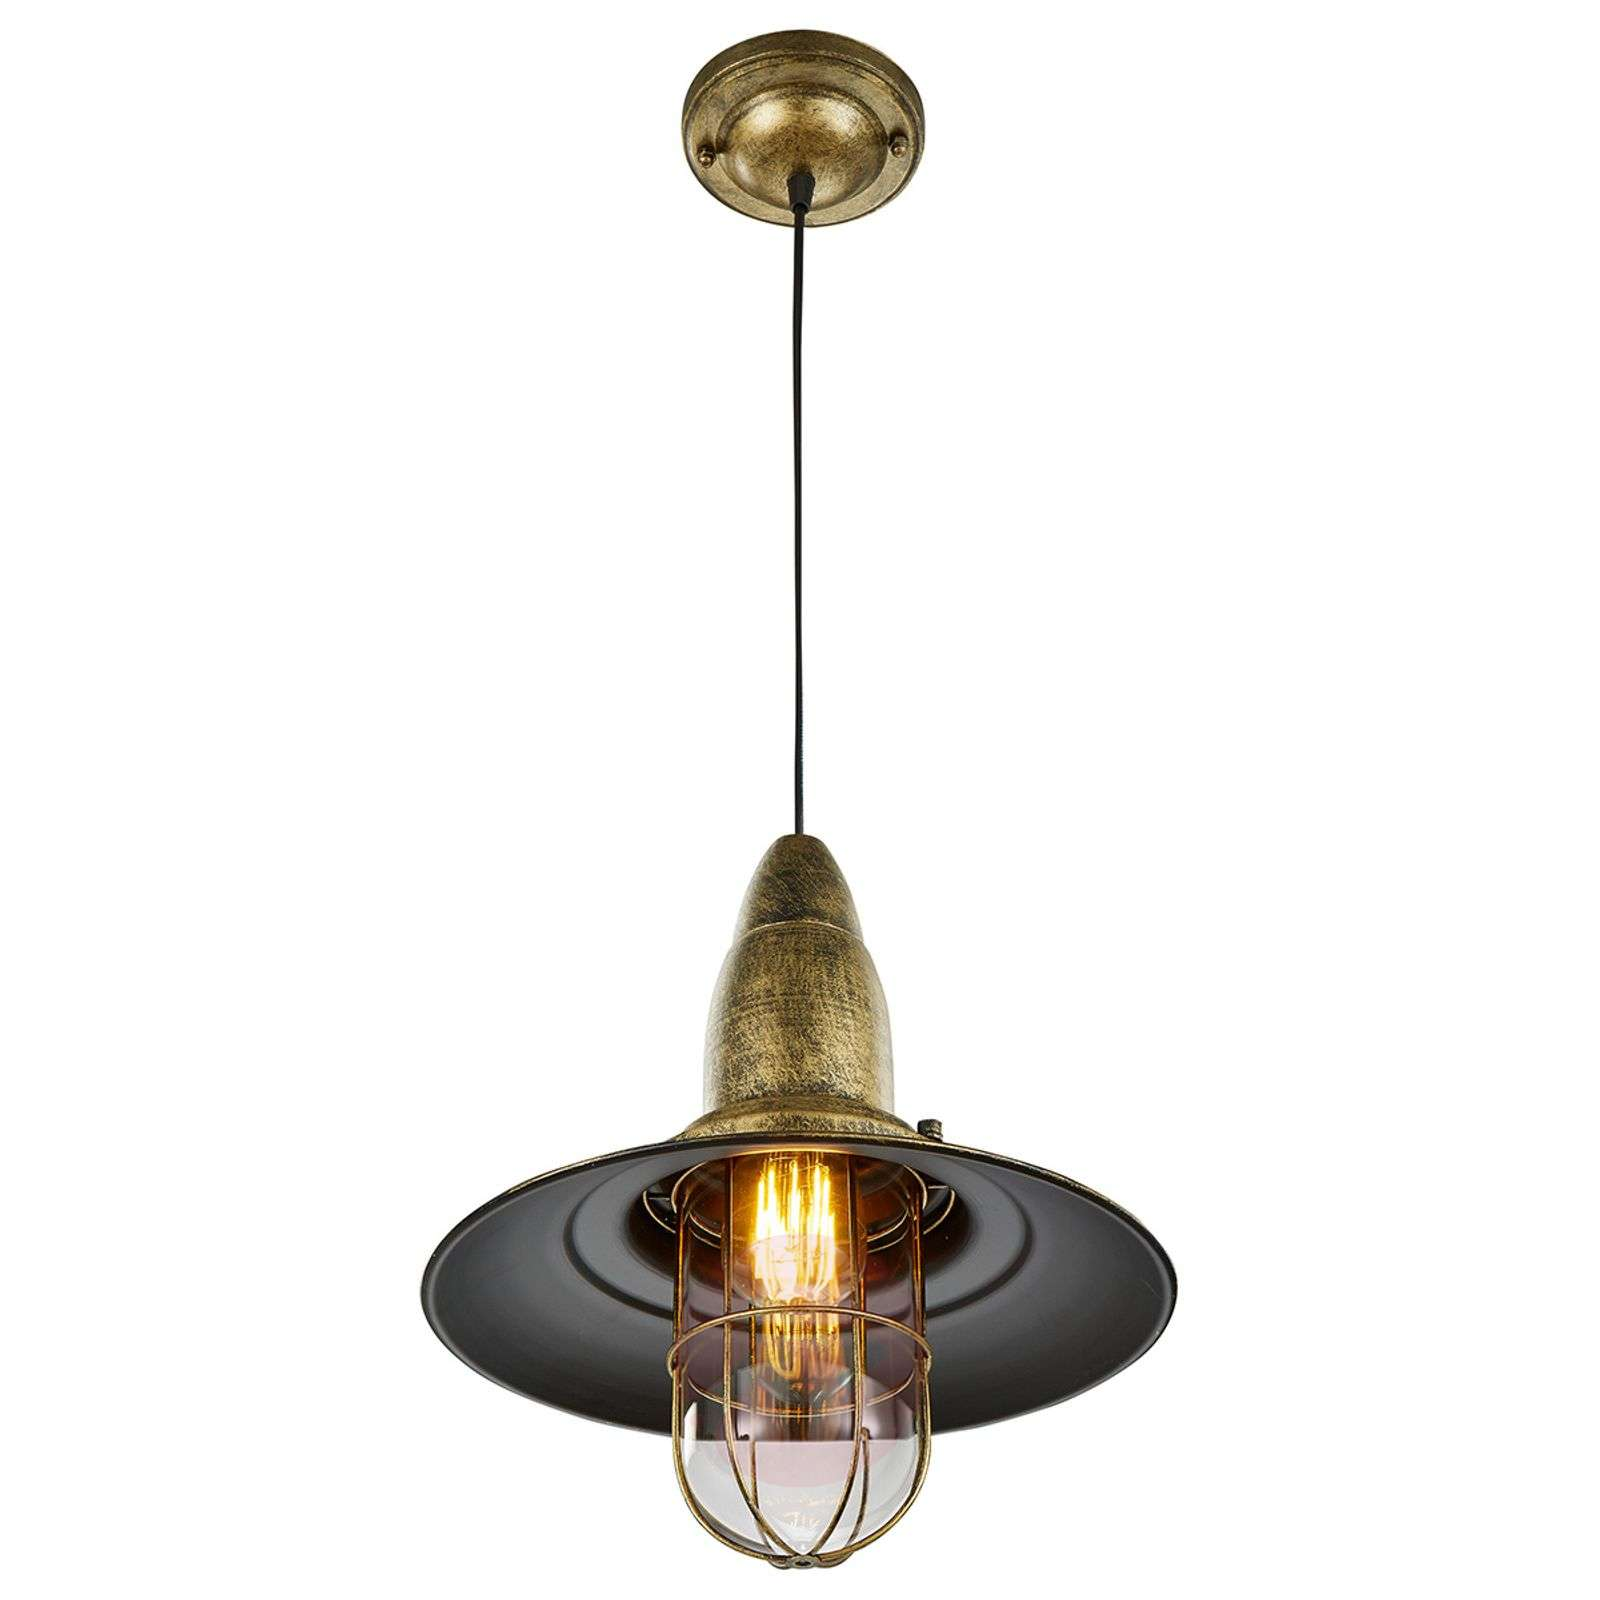 darby product garden overstock light home lamp safavieh adjustable pendant inch shipping lighting free today brass large